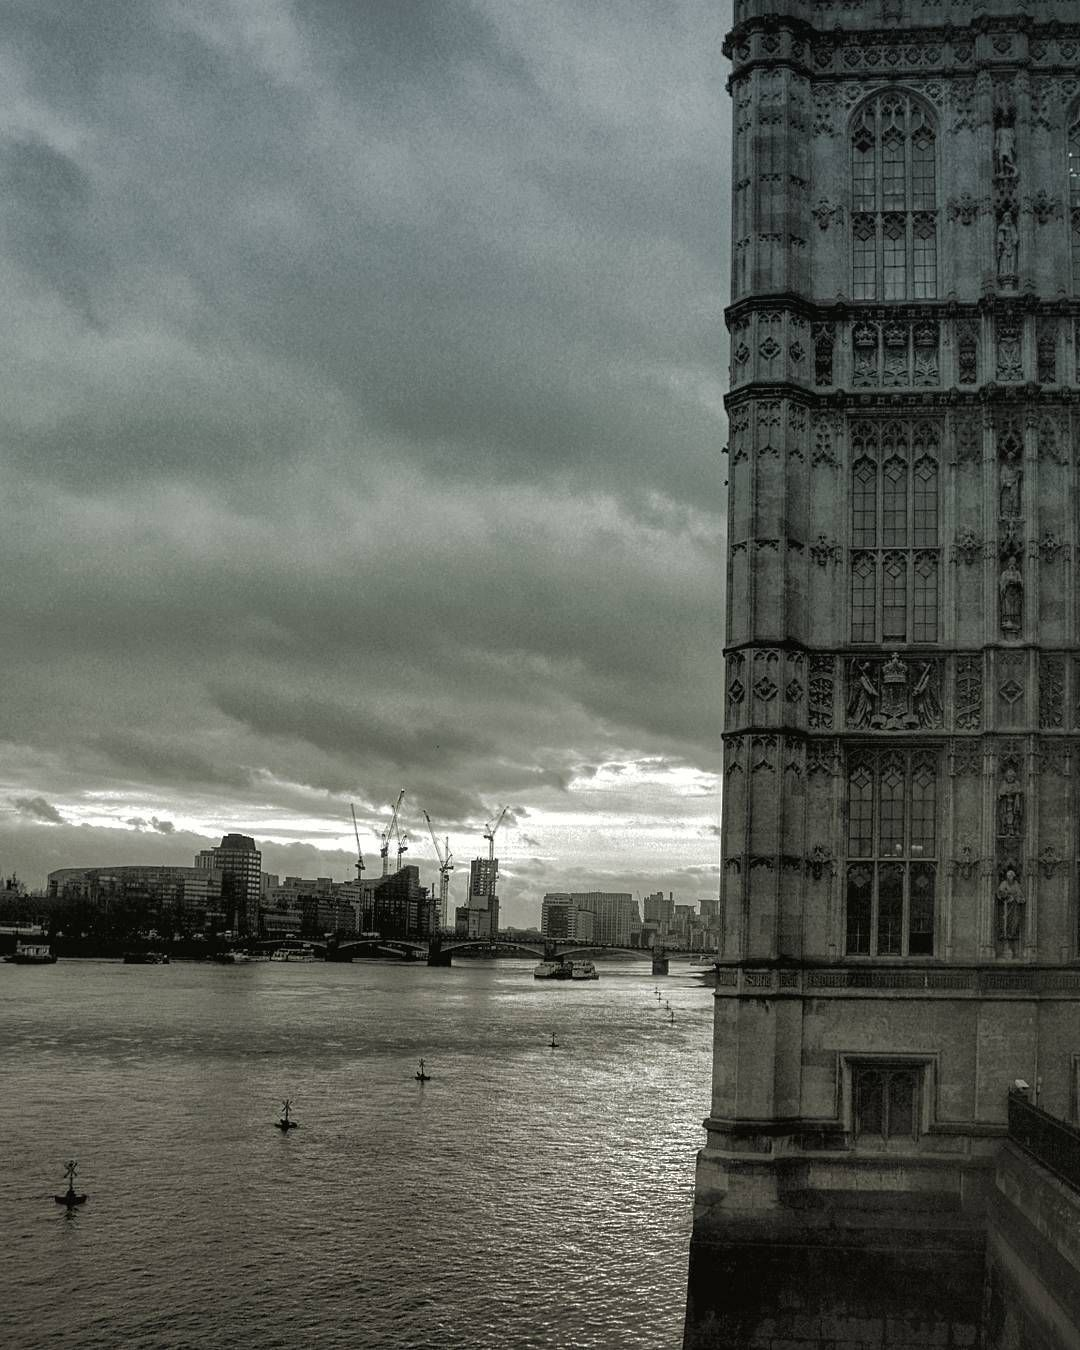 Good morning!  #goodmorning#love#london#city#river#thames#view#dark#sky#clouds#december#winter#igers#uk#england#instago#travel#wanderlust#architecture#old#new#palace#awesome#skyporn#instagood#l4l#nikon#photo by r.u.n.e_